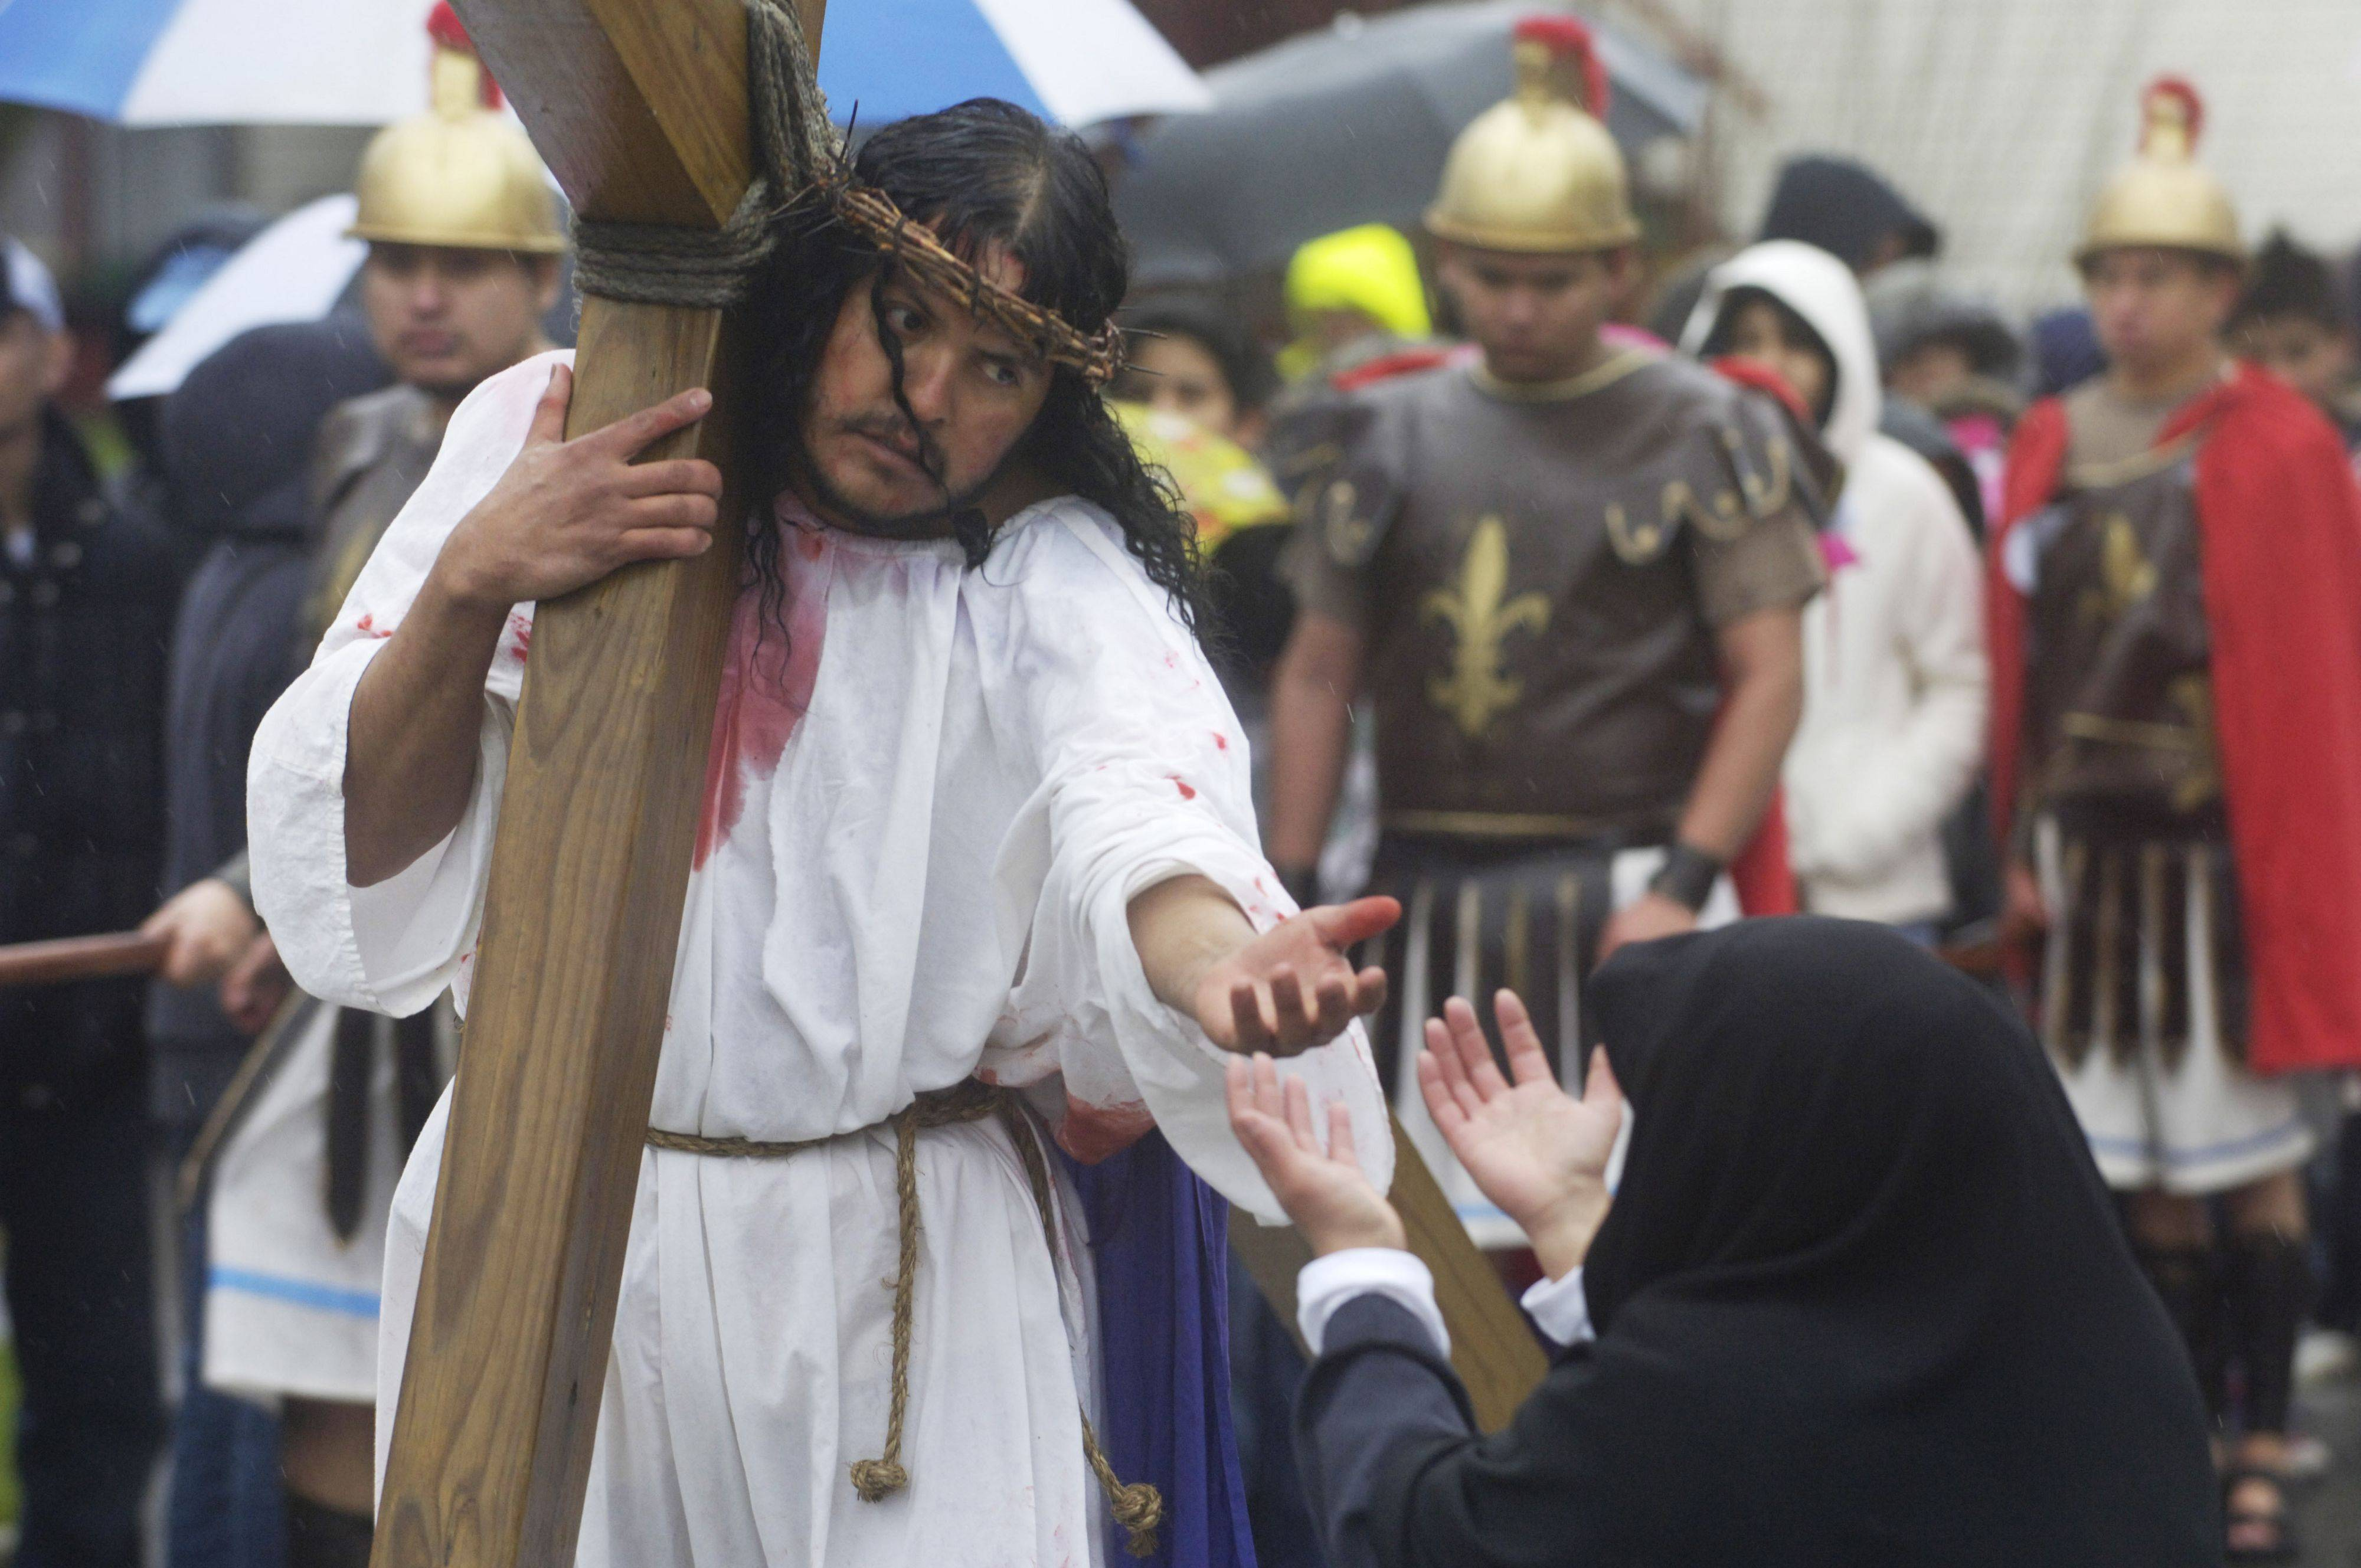 Images: Good Friday observed in the suburbs